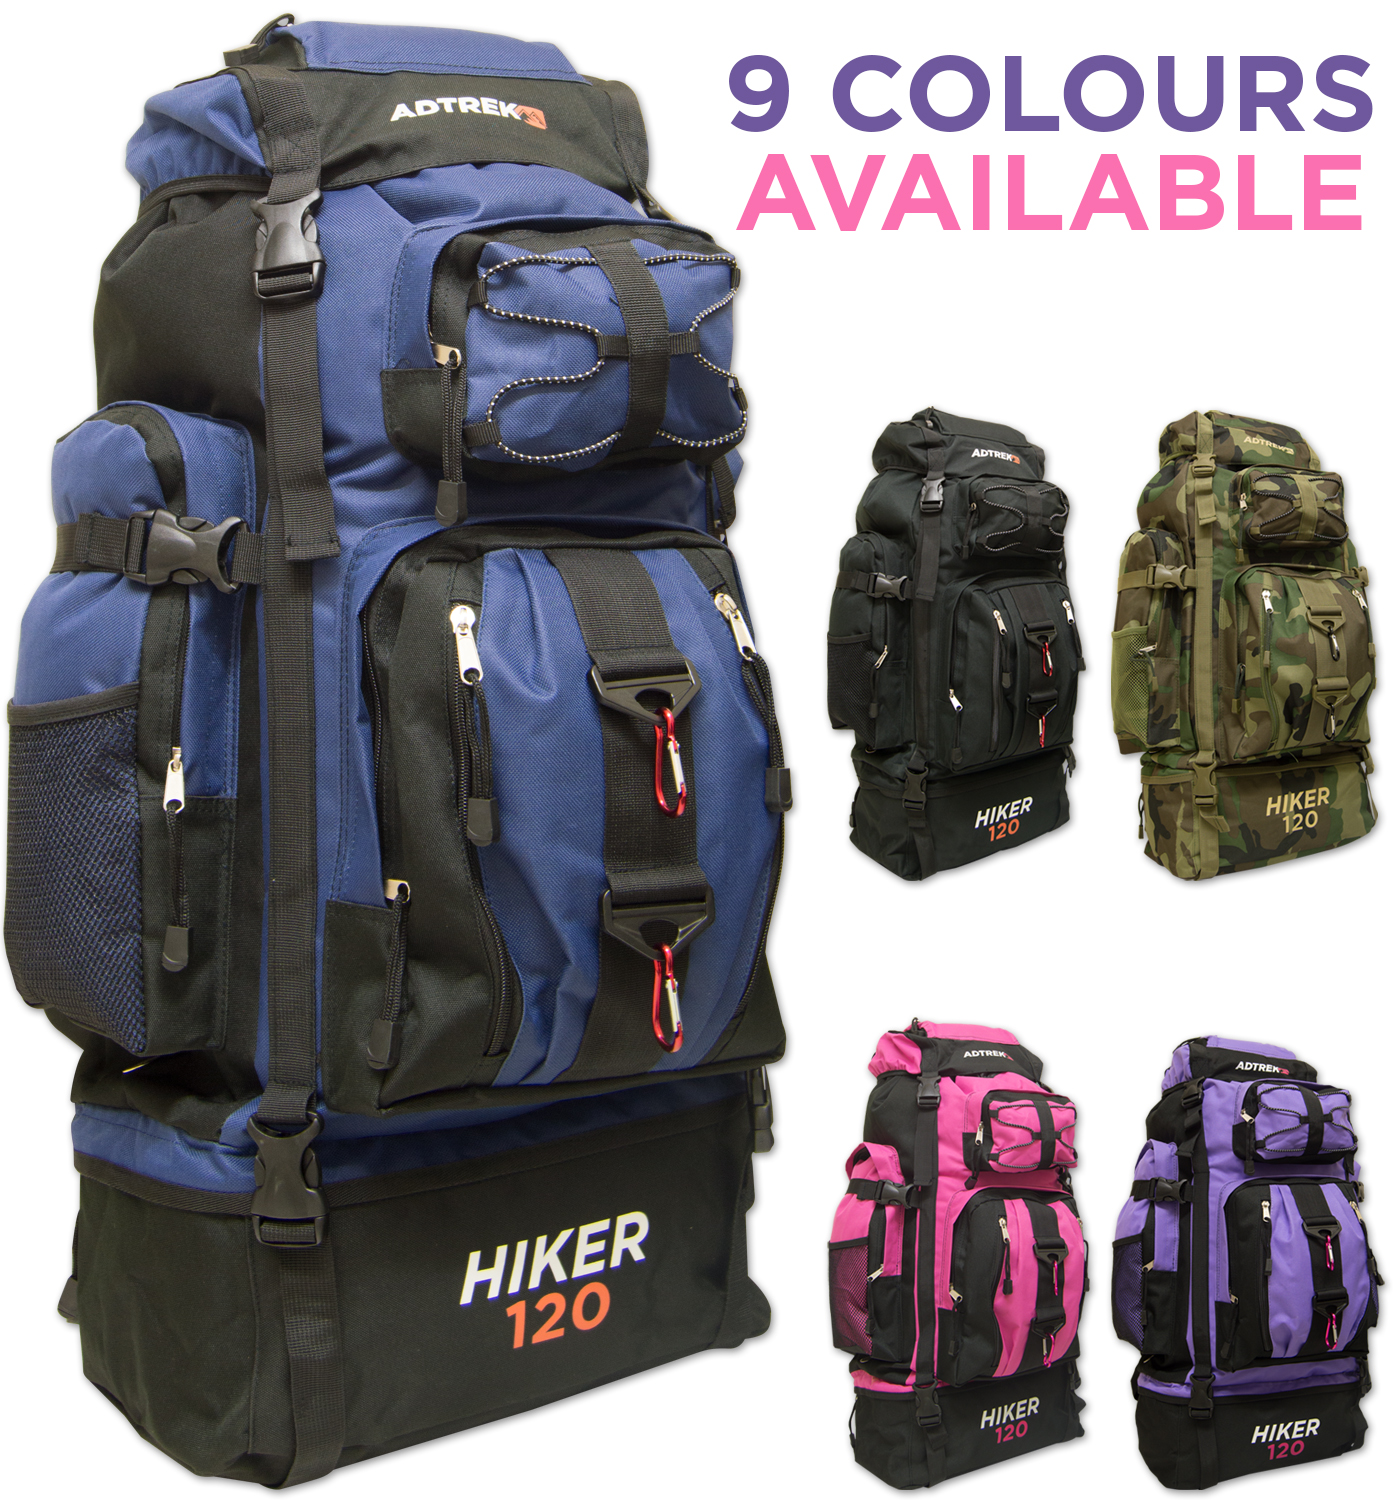 Large Hiking Backpacks sob4bFxL